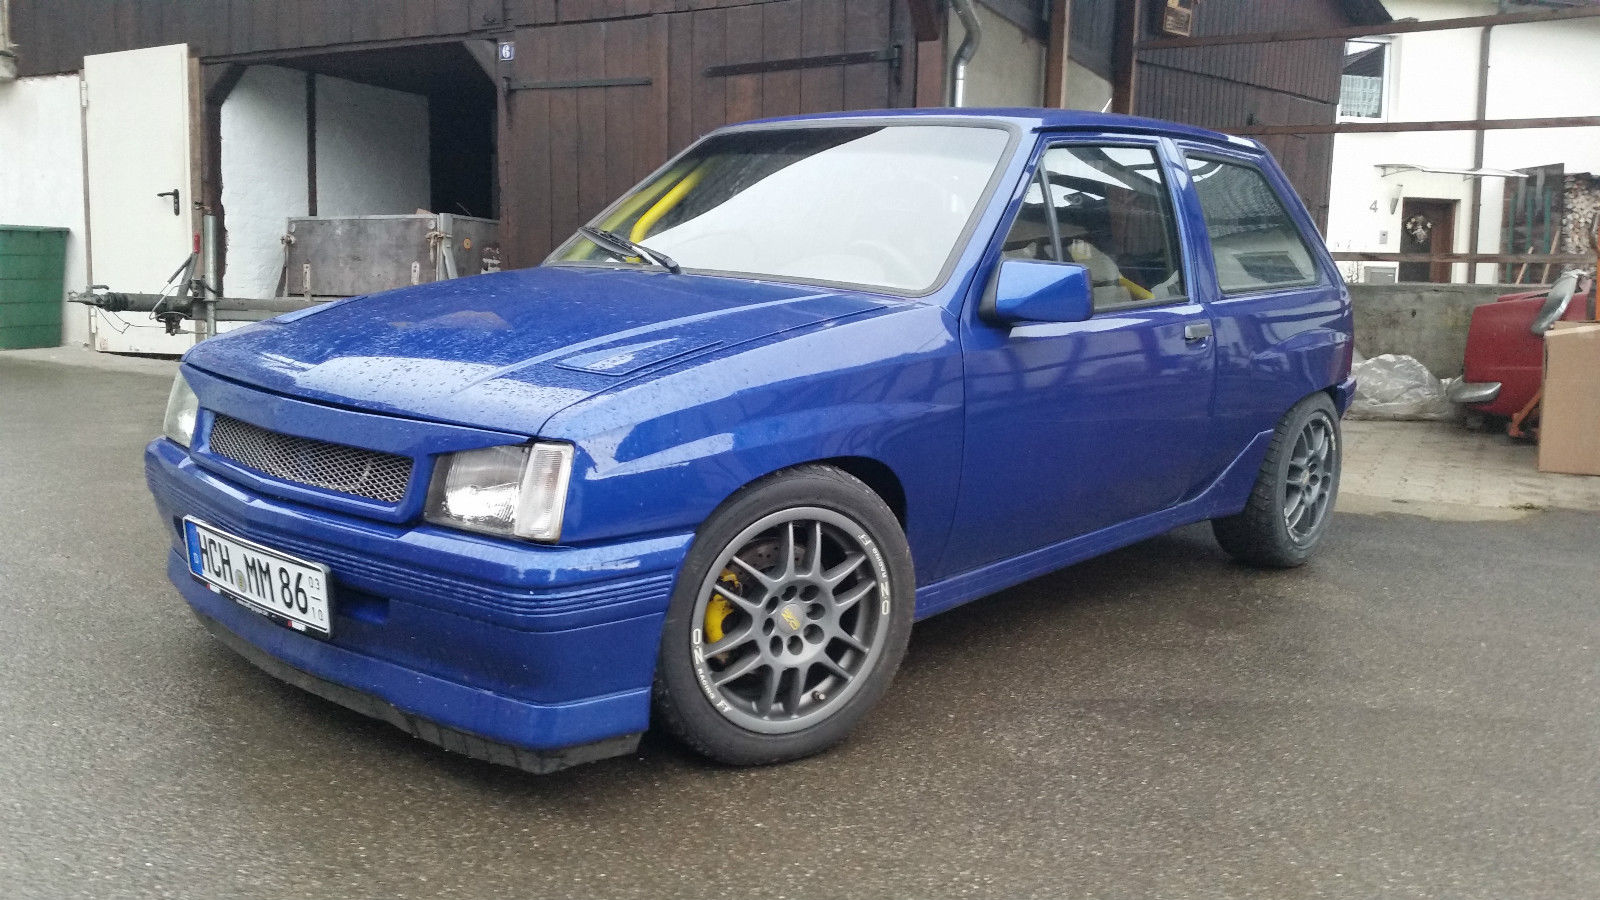 1990 opel corsa a 2 0 16v c20xe 150ps tuning rennsport k fig oz sparco gewinde for sale. Black Bedroom Furniture Sets. Home Design Ideas